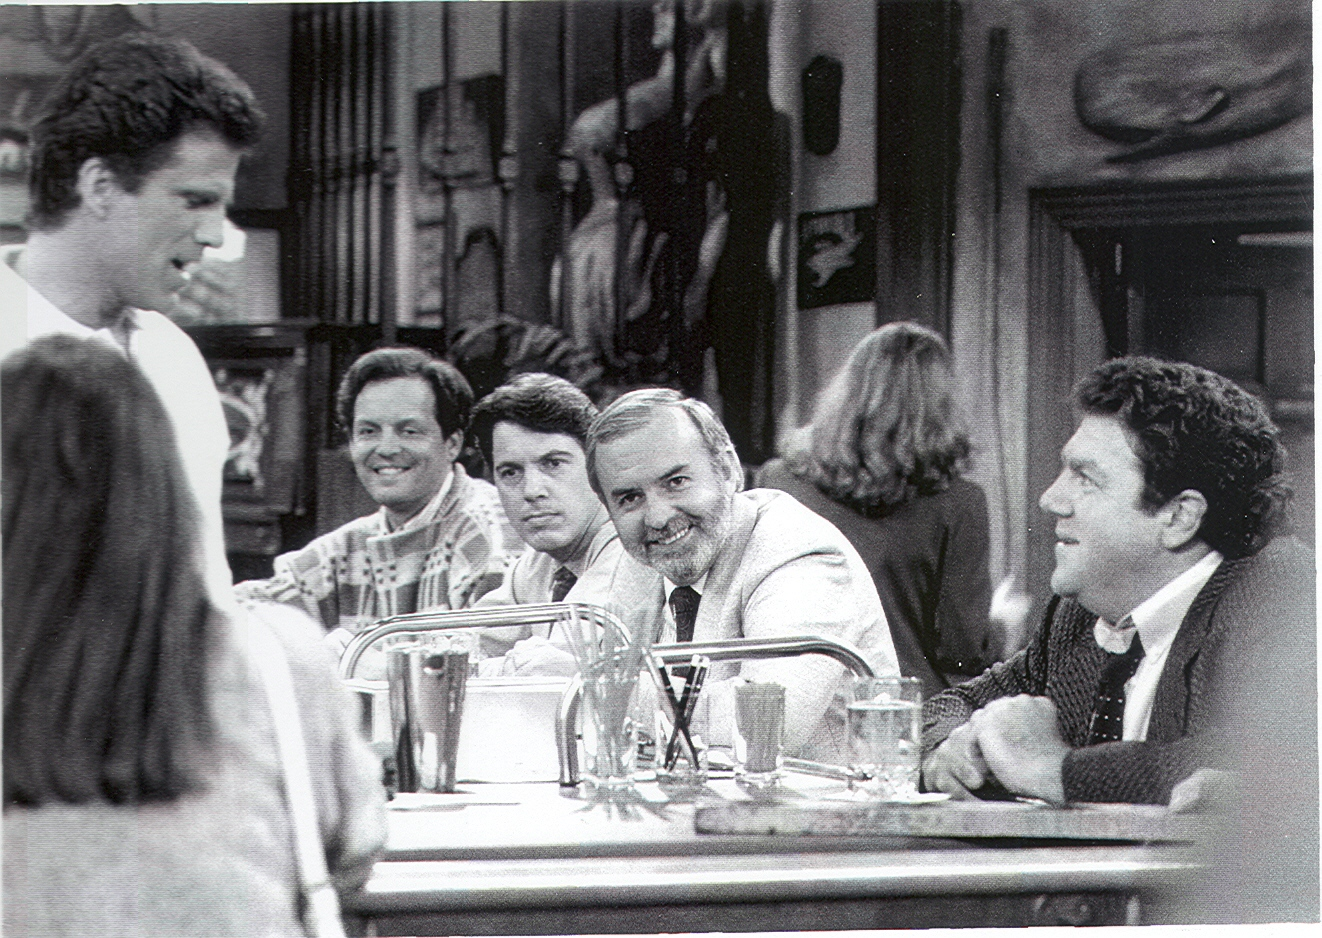 David Angell on Cheers